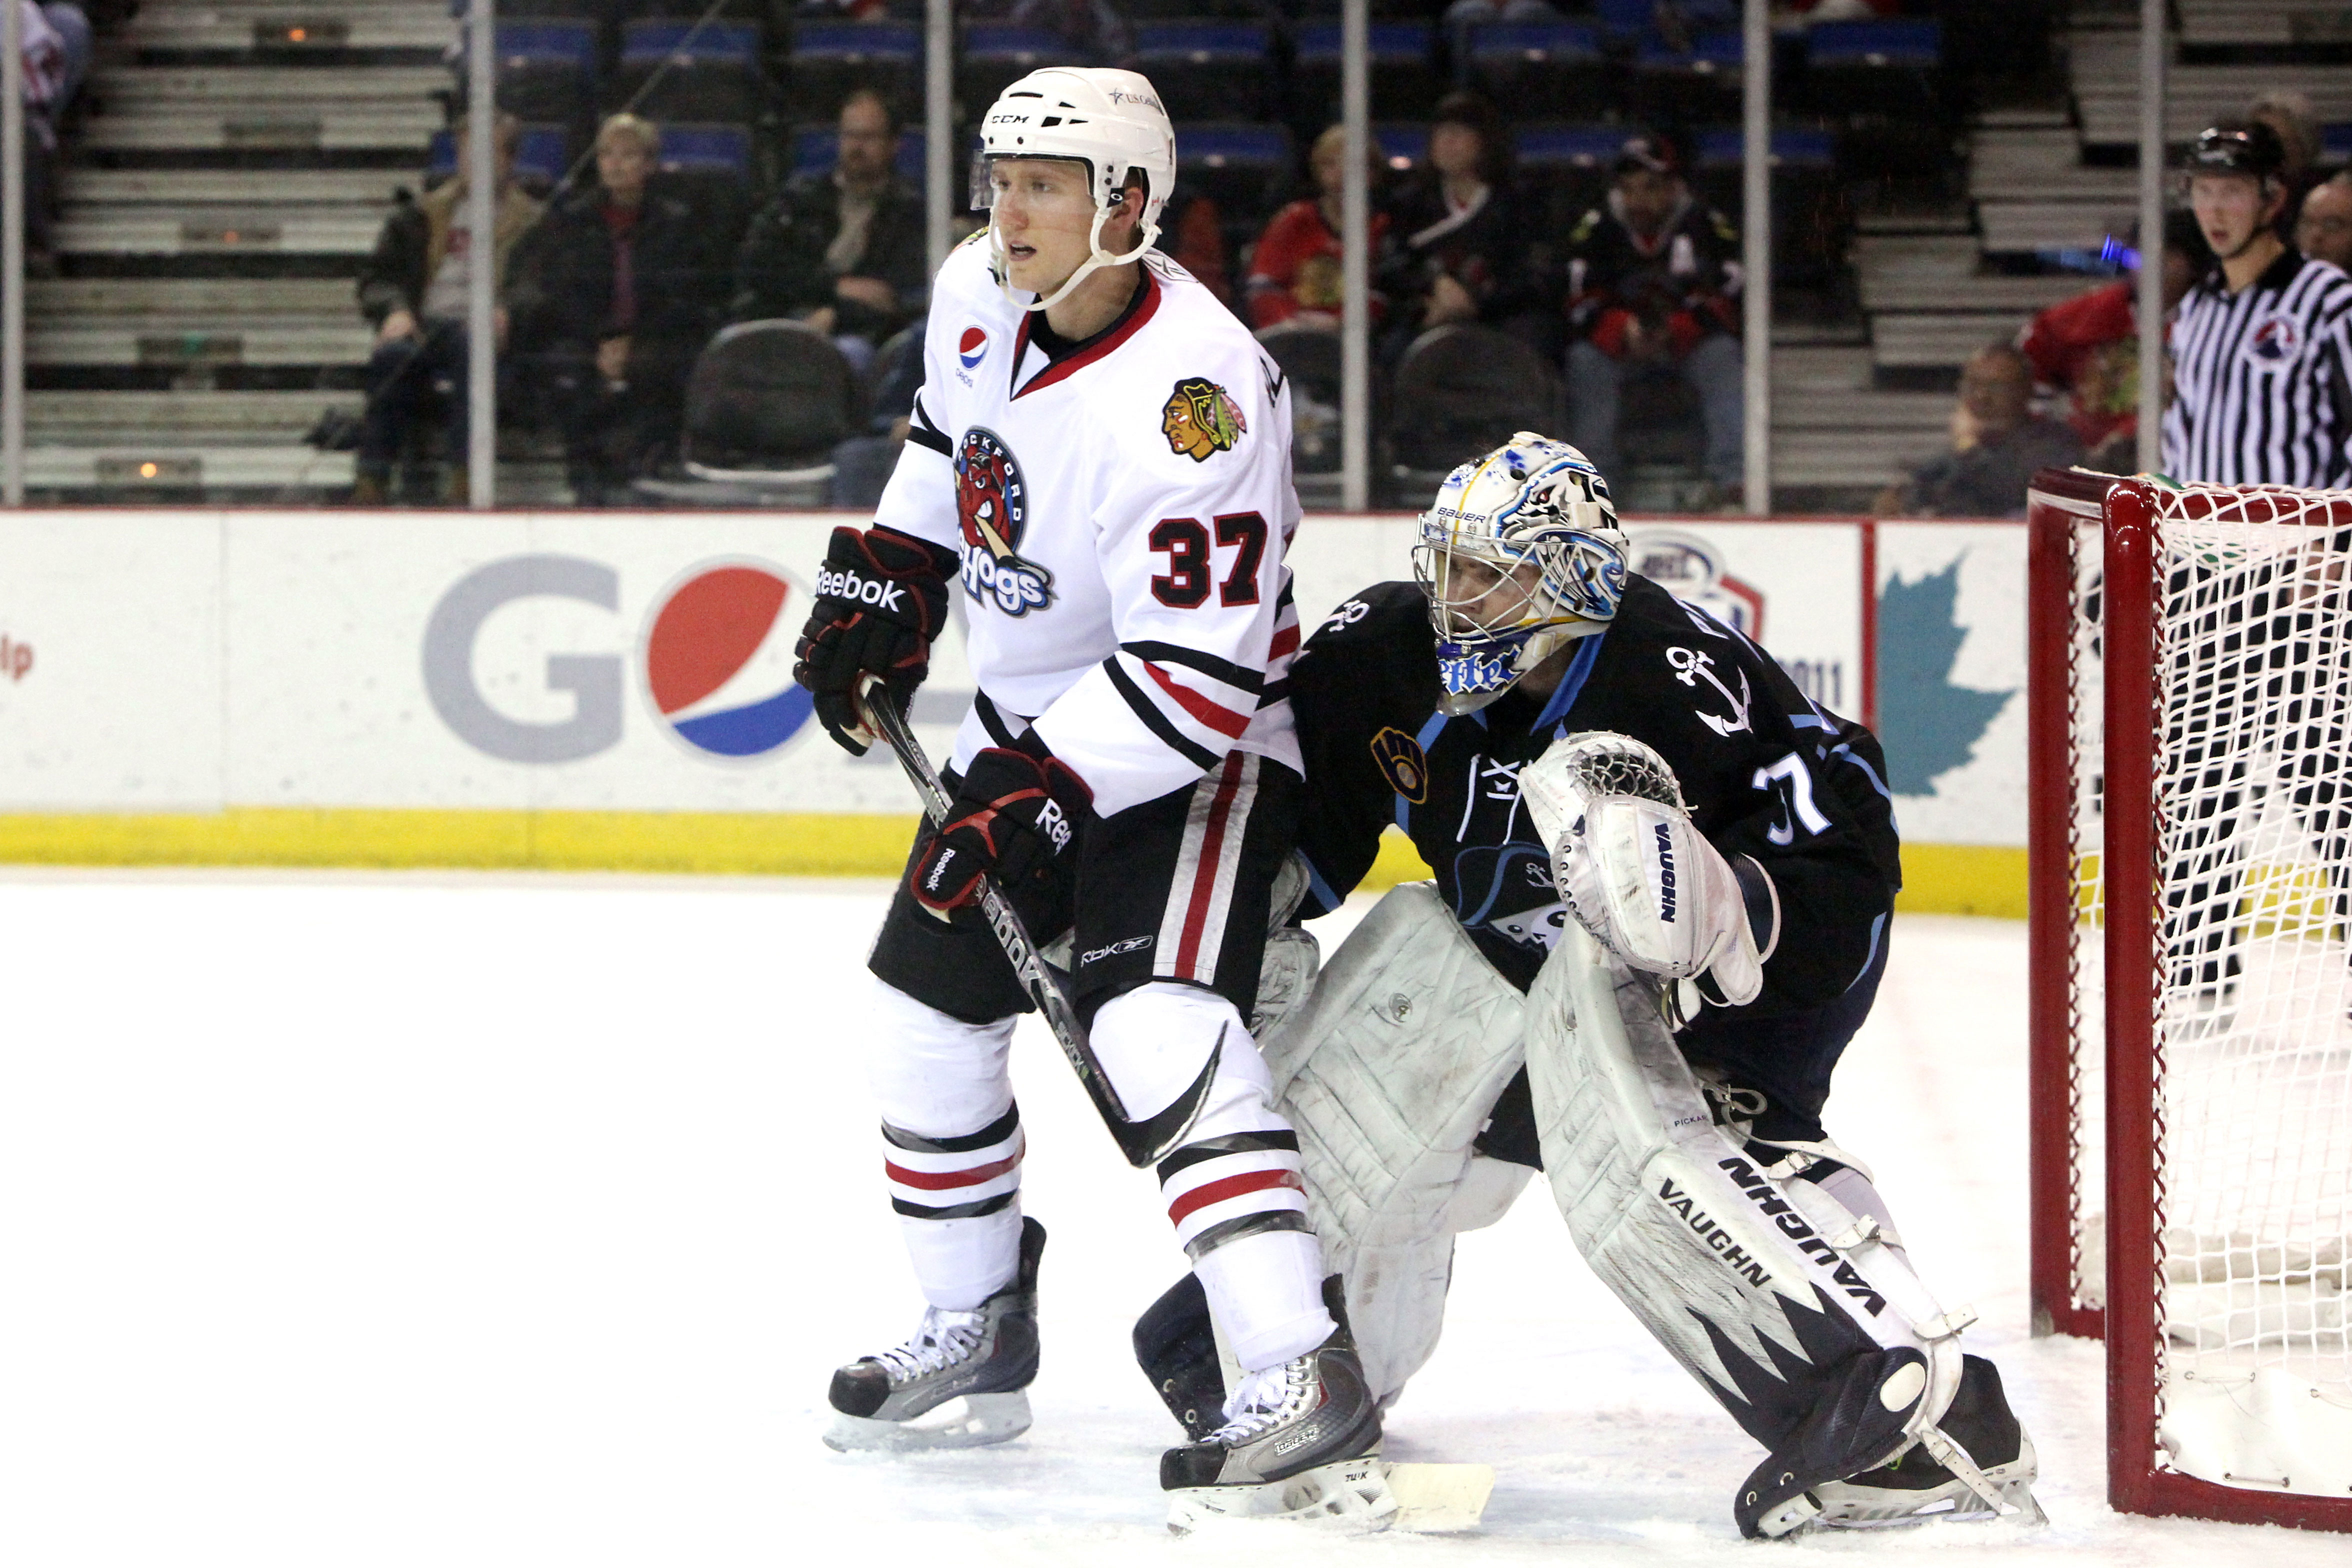 086965b2382 Official Website of the Rockford IceHogs: News